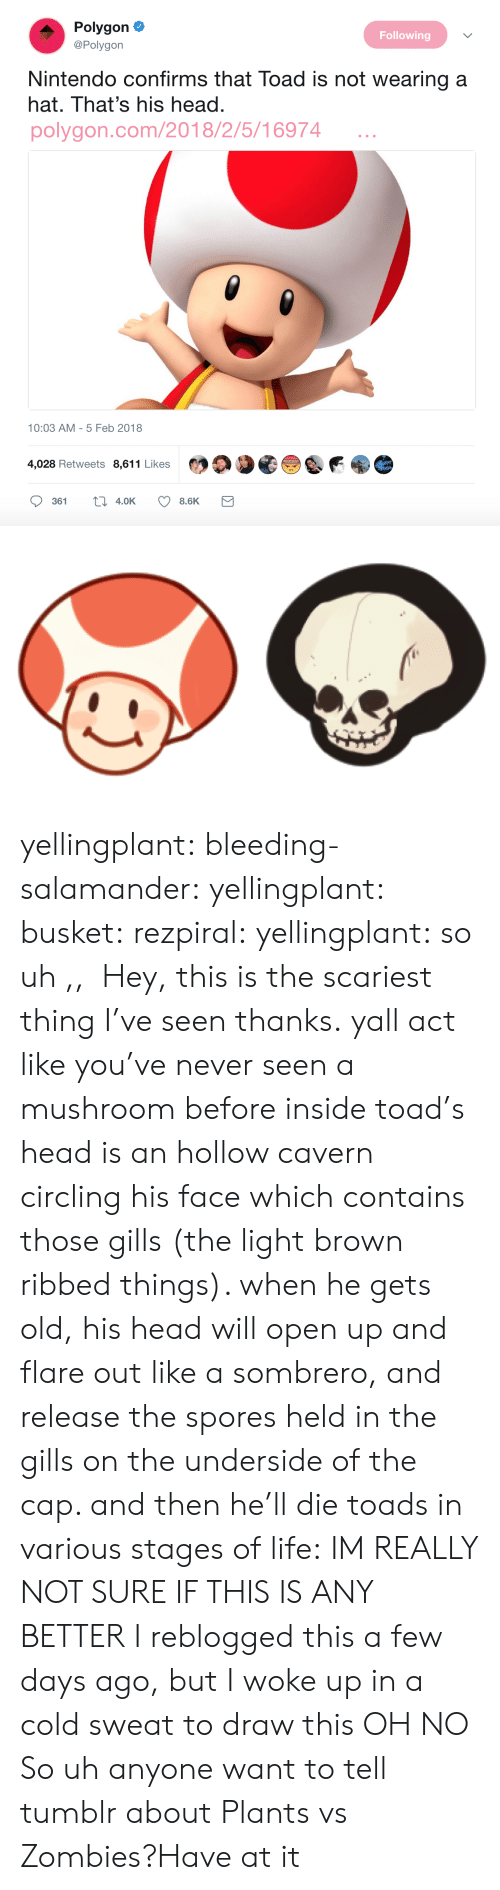 plants vs zombies: Polygon  Following  @Polygon  Nintendo confirms that Toad is not wearing a  hat. That's his head.  polygon.com/2018/2/5/16974  10:03 AM - 5 Feb 2018  4,028 Retweets 8,611 Likes yellingplant:  bleeding-salamander:  yellingplant:  busket:  rezpiral:  yellingplant:  so uh ,,  Hey, this is the scariest thing I've seen thanks.  yall act like you've never seen a mushroom before inside toad's head is an hollow cavern circling his face which contains those gills (the light brown ribbed things). when he gets old, his head will open up and flare out like a sombrero, and release the spores held in the gills on the underside of the cap. and then he'll die toads in various stages of life:  IM REALLY NOT SURE IF THIS IS ANY BETTER  I reblogged this a few days ago, but I woke up in a cold sweat to draw this  OH NO  So uh anyone want to tell tumblr about Plants vs Zombies?Have at it